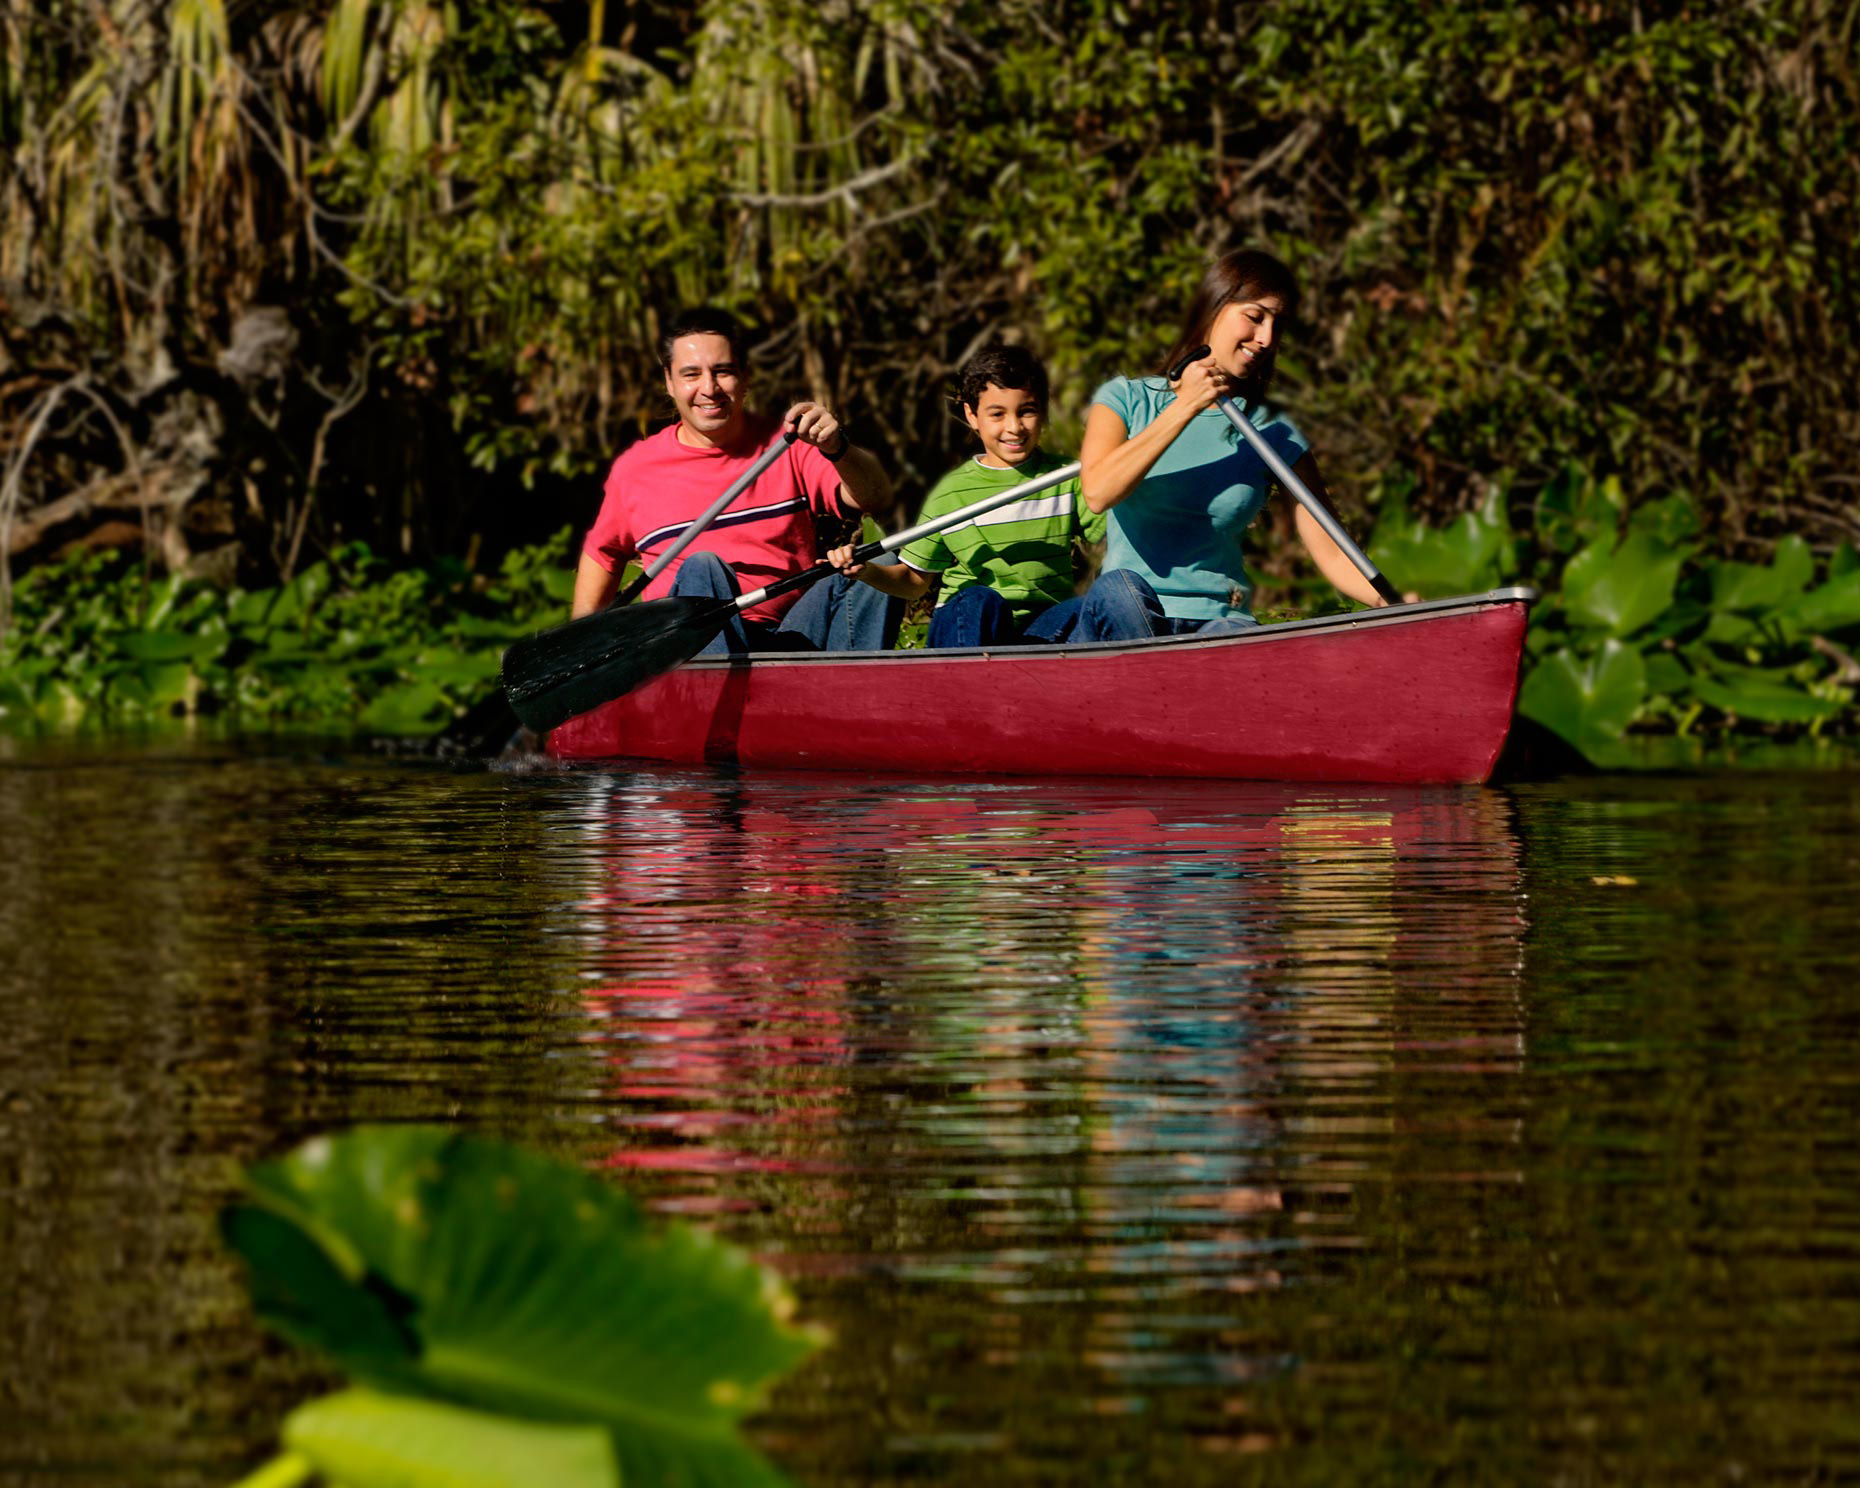 Lifestyle Photography | Photography of a Family on Canoe Trip